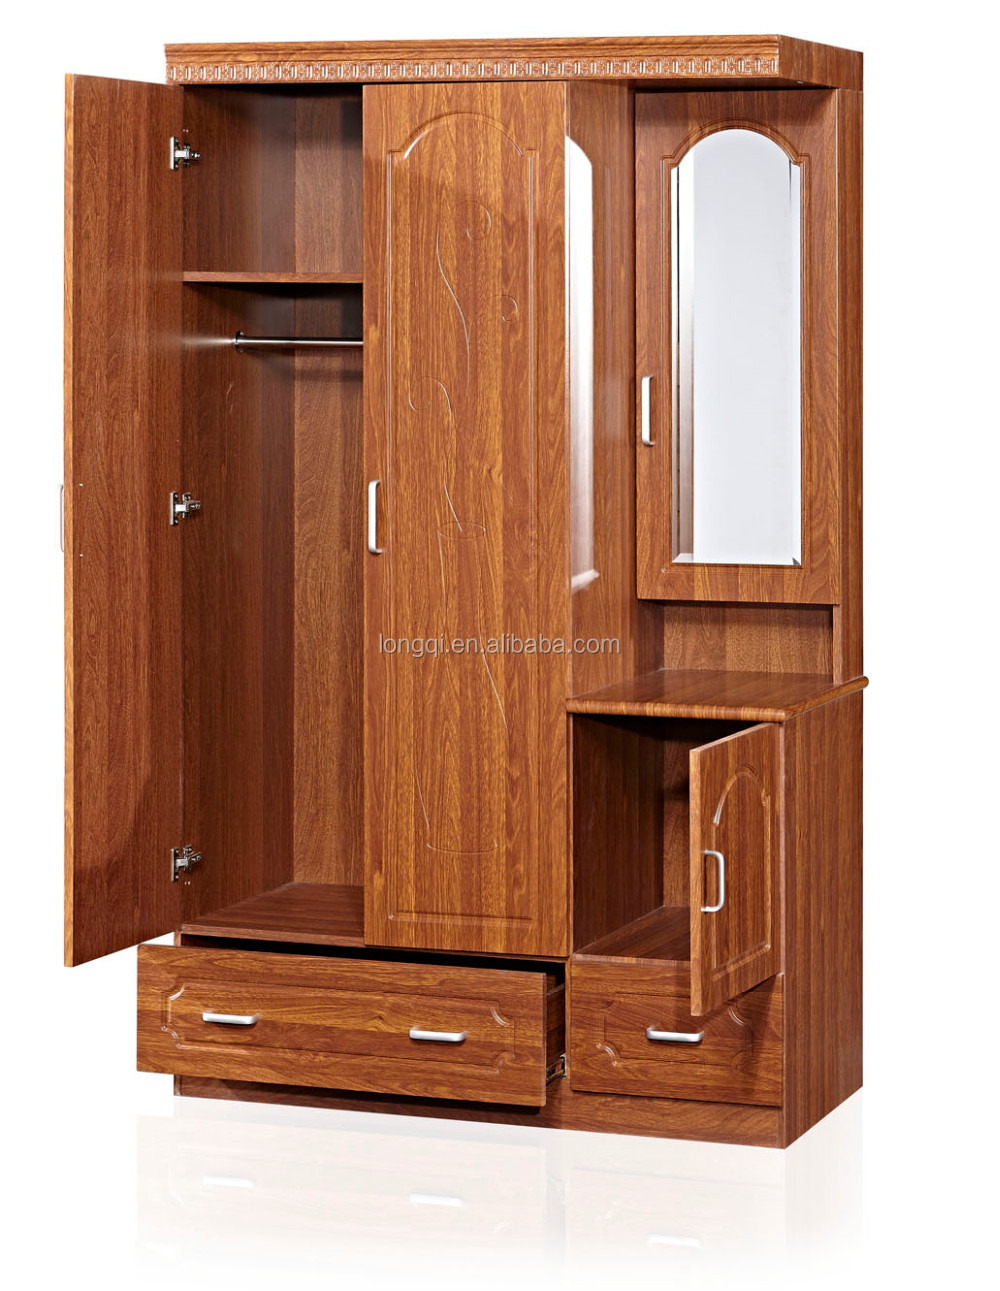 New Arrival Bedroom Mdf Wardrobe Design Wood Clothes